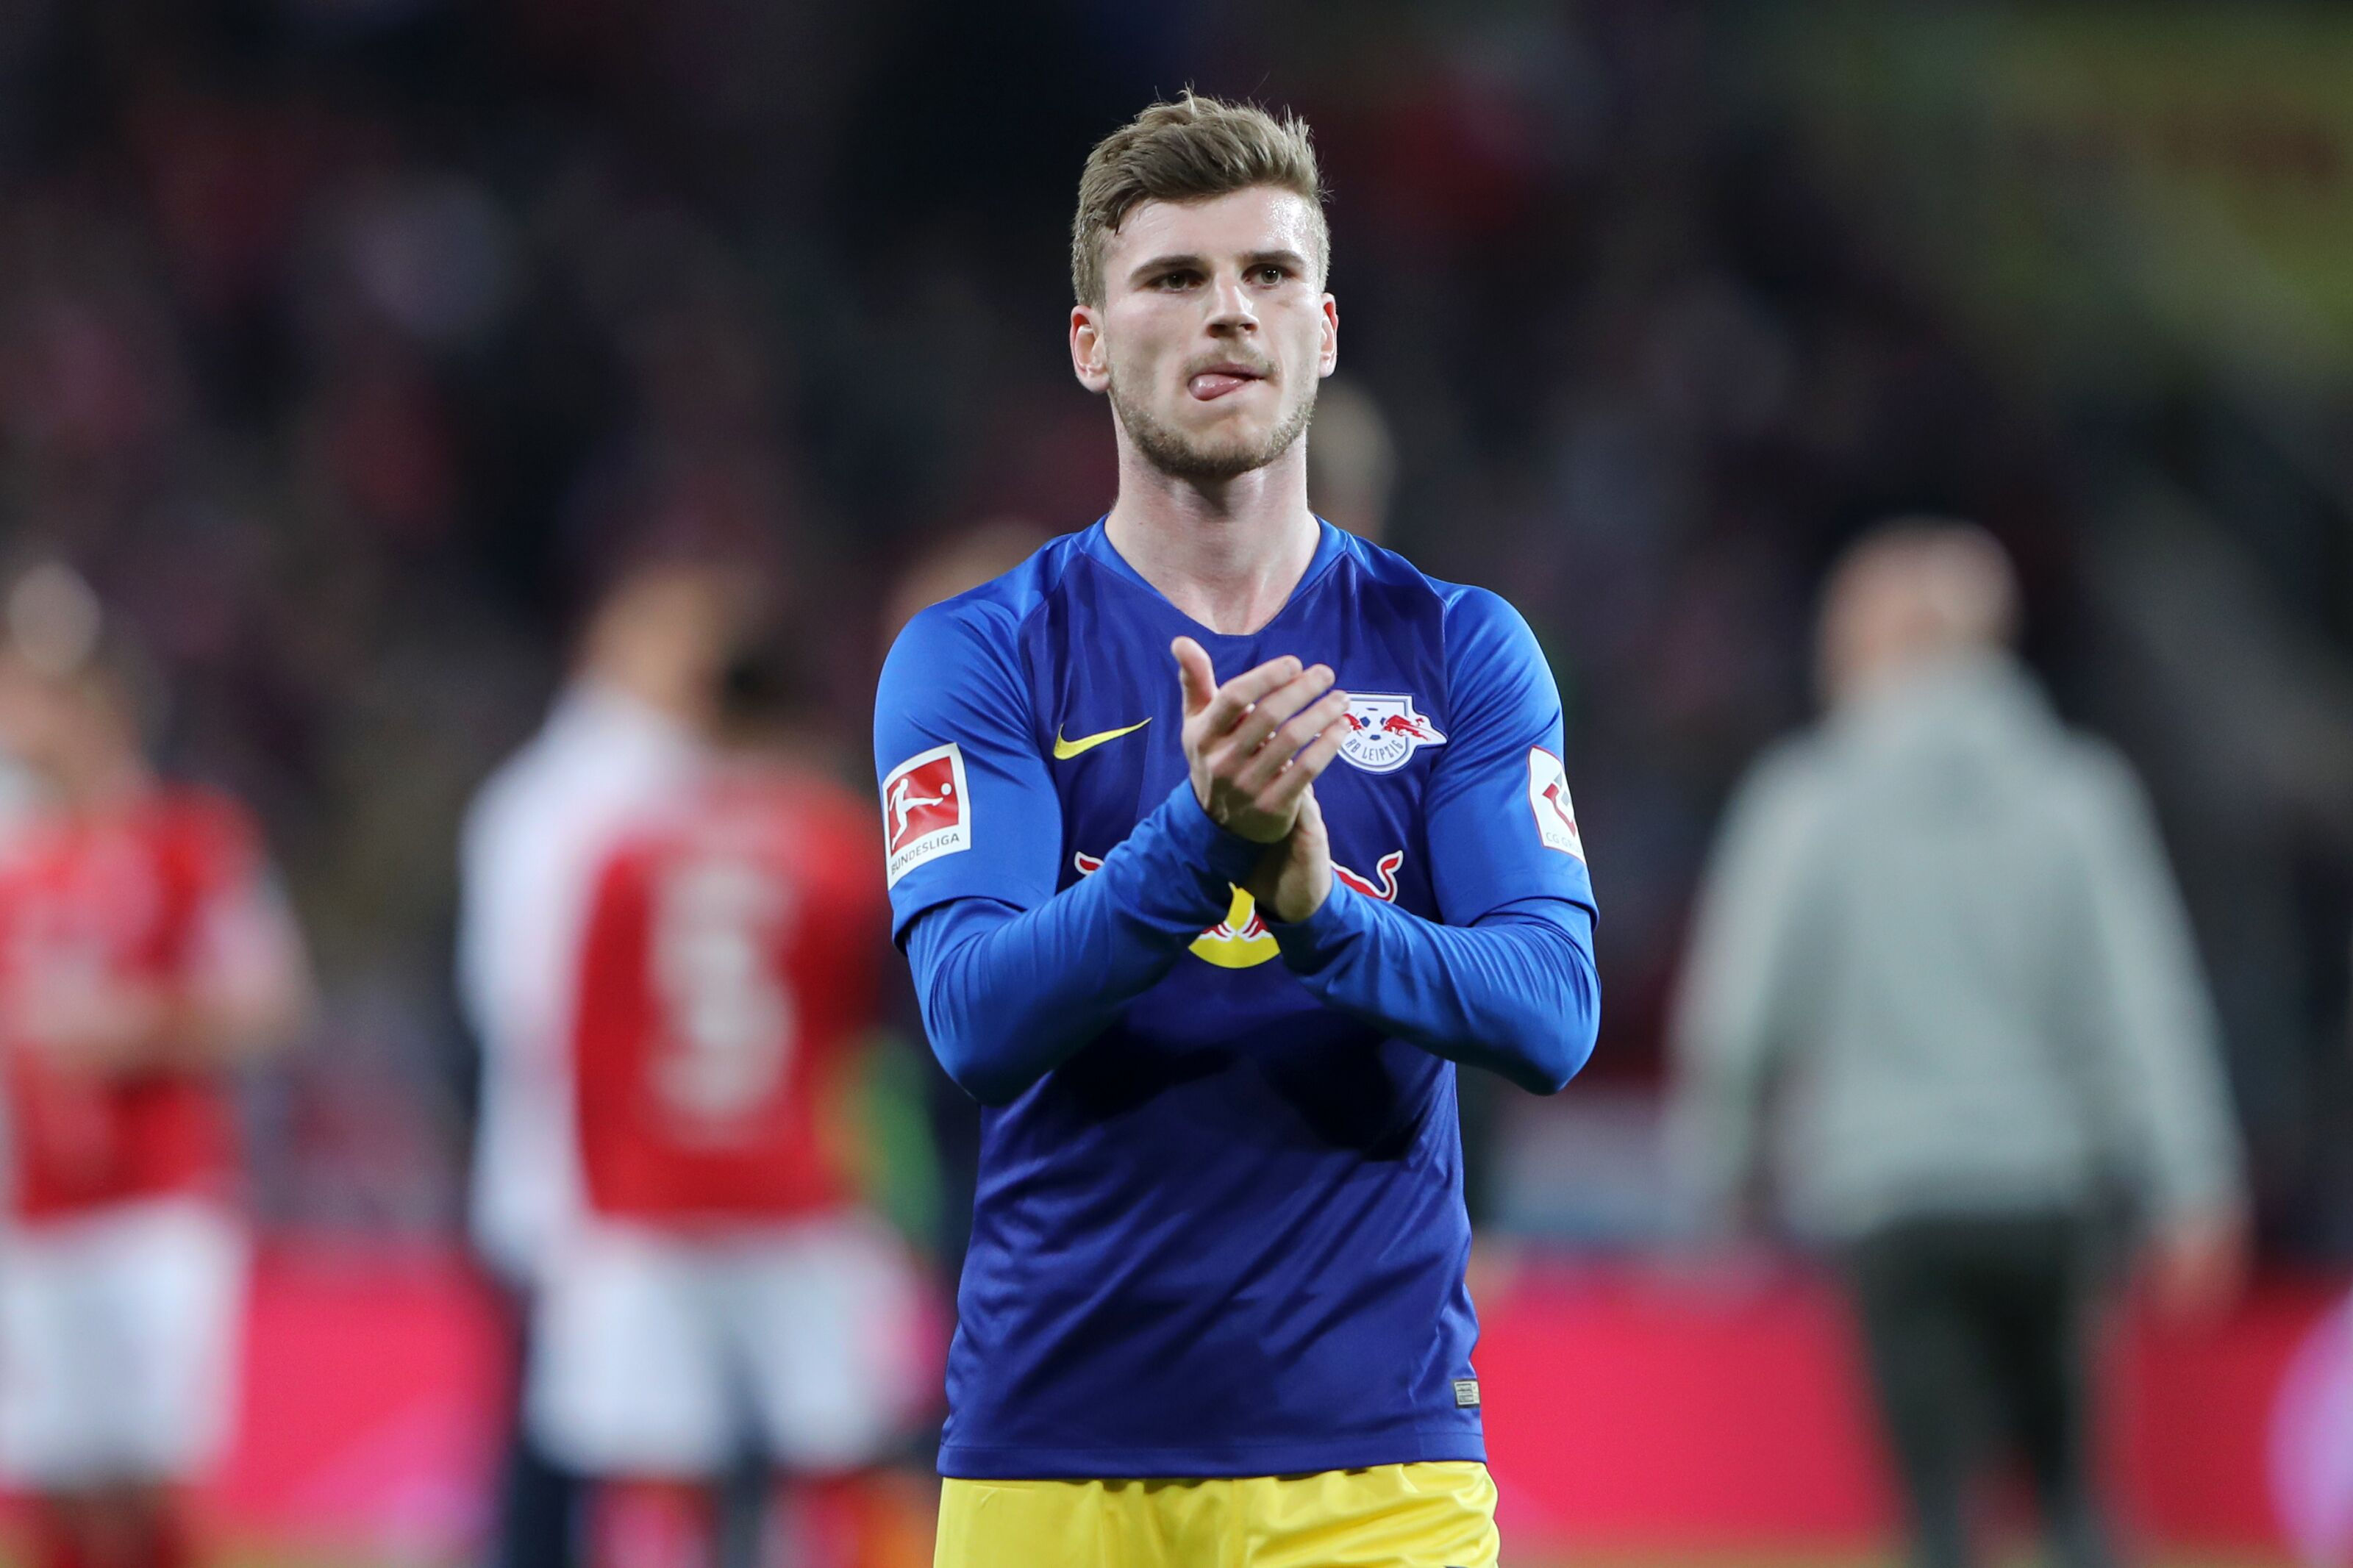 Bayern Munich could wait to get Timo Werner on a free transfer